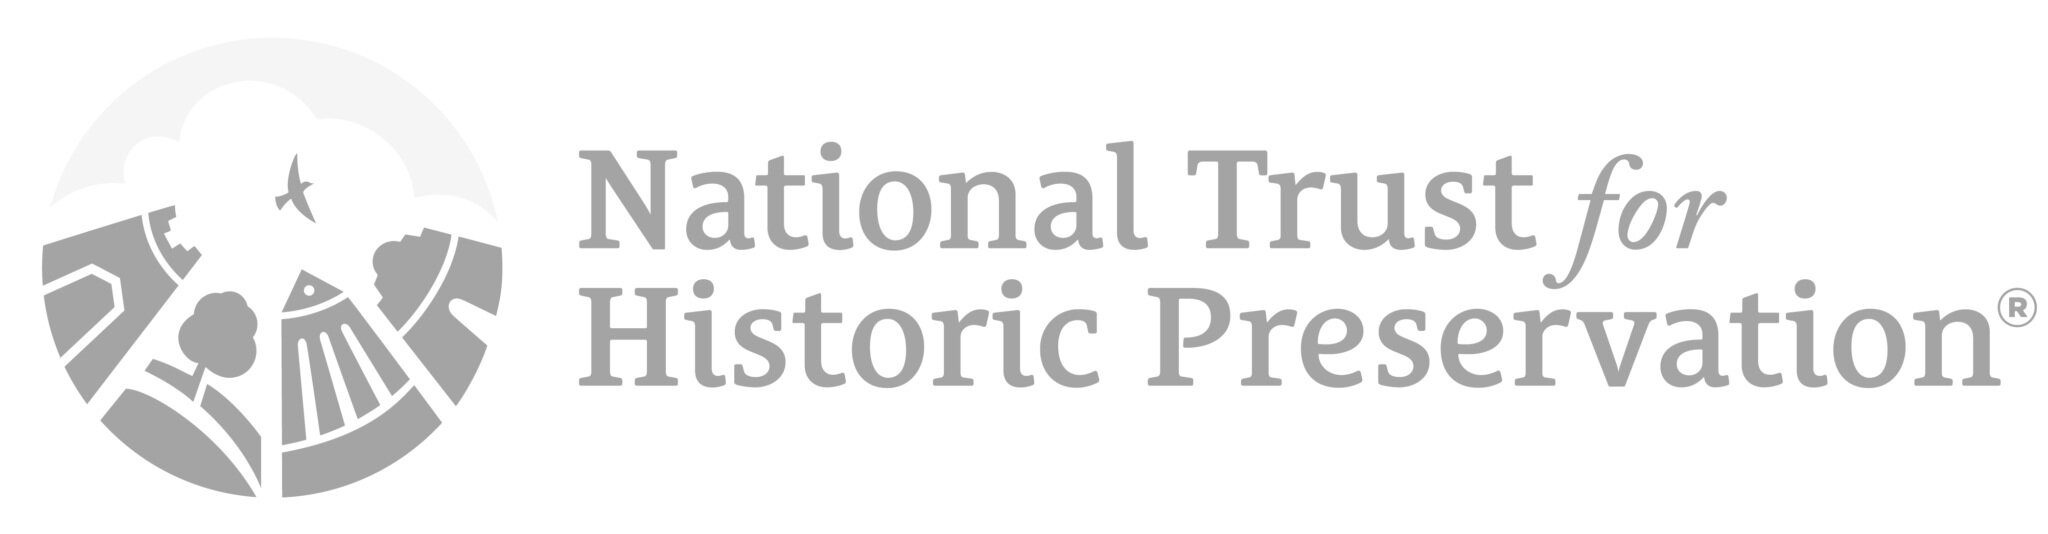 National Trust for Historic Preservation.png